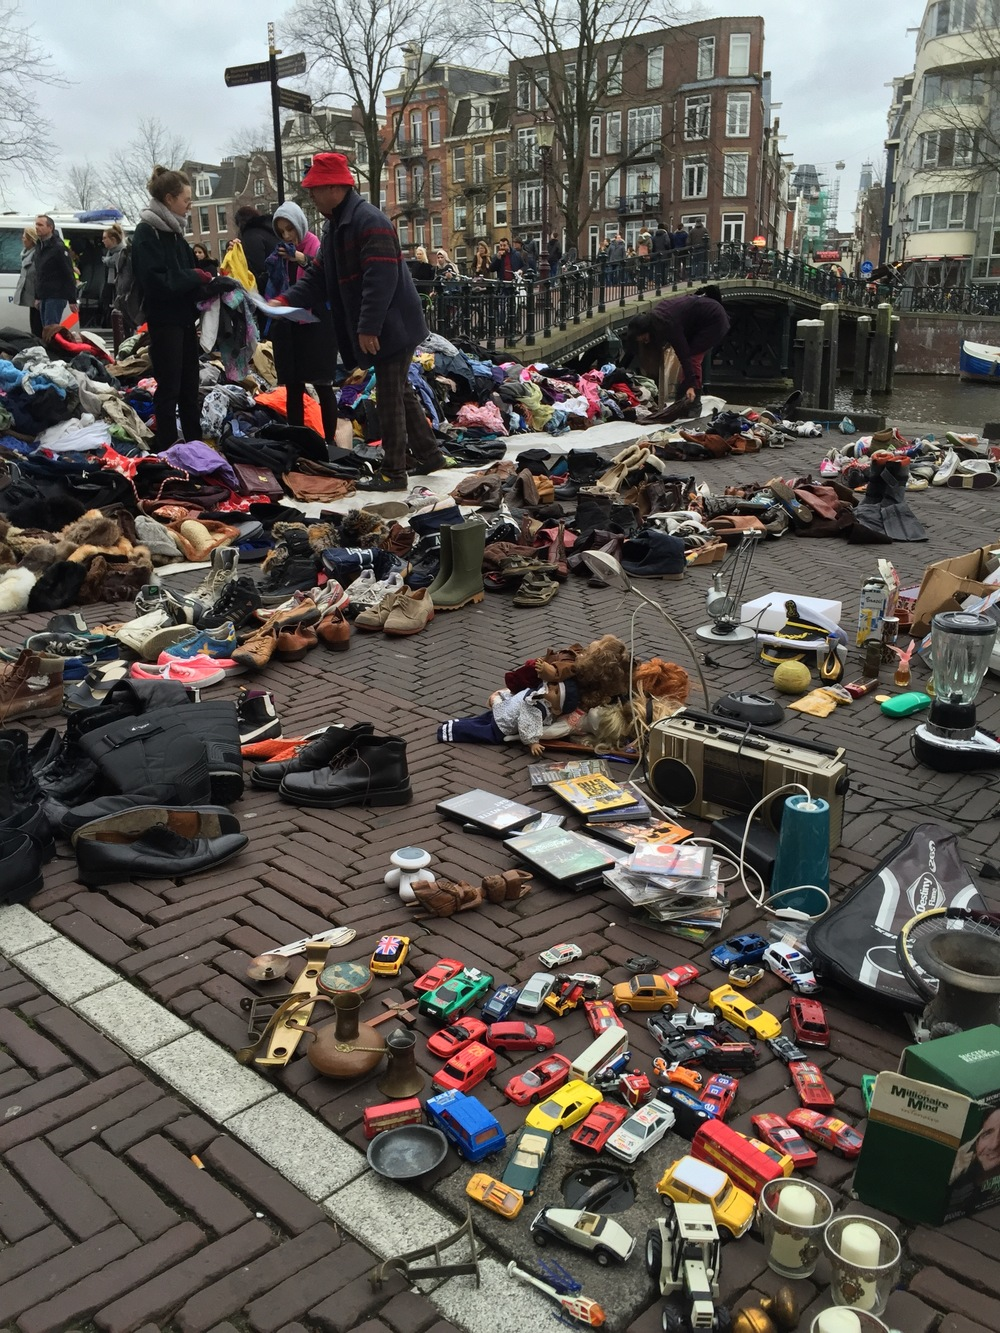 Waterlooplein vendor. Ten meters from police line, just off camera to the left.